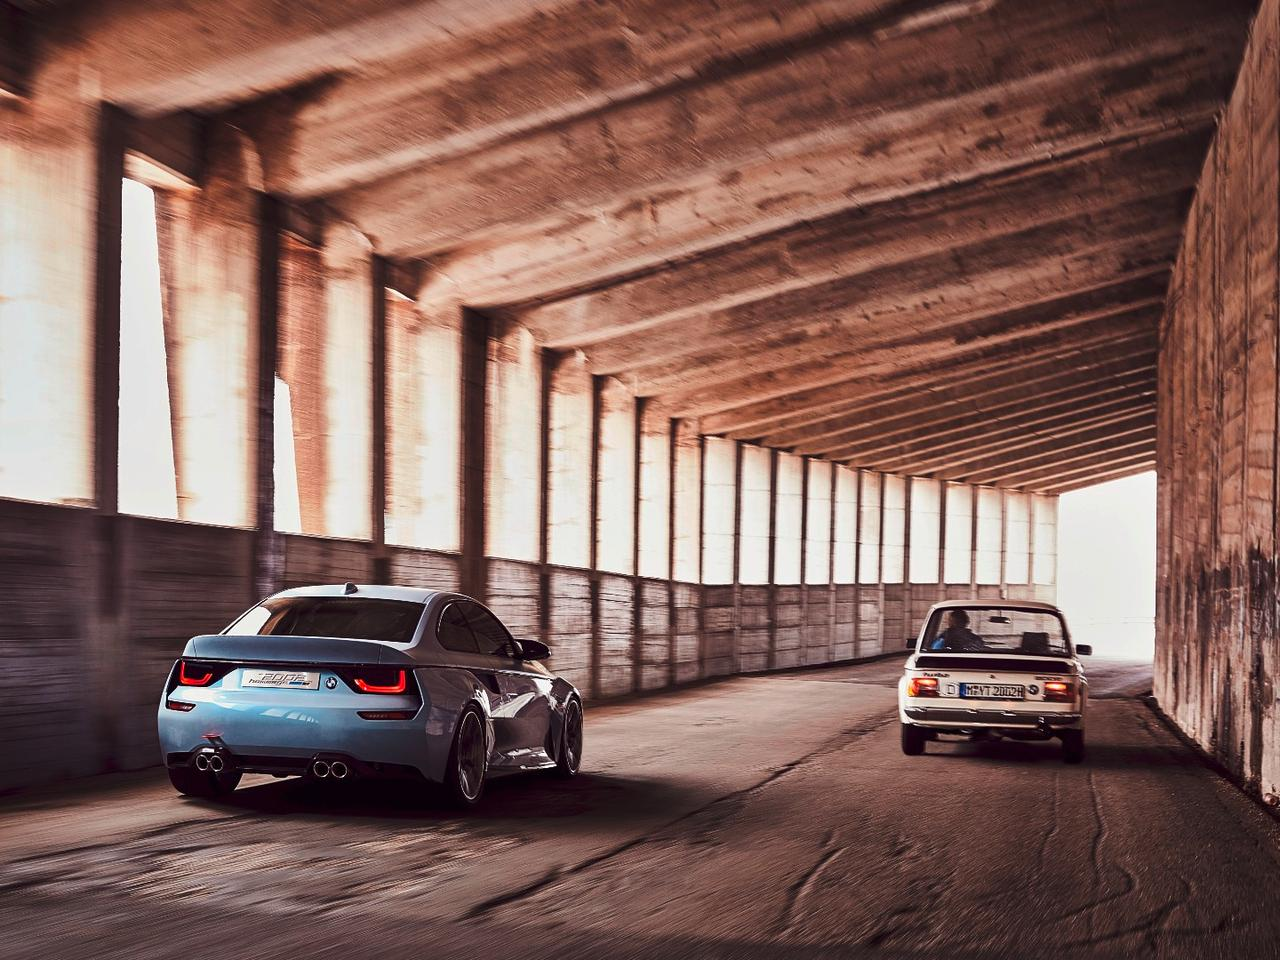 BMW throws back to the 2002 with latest Hommage